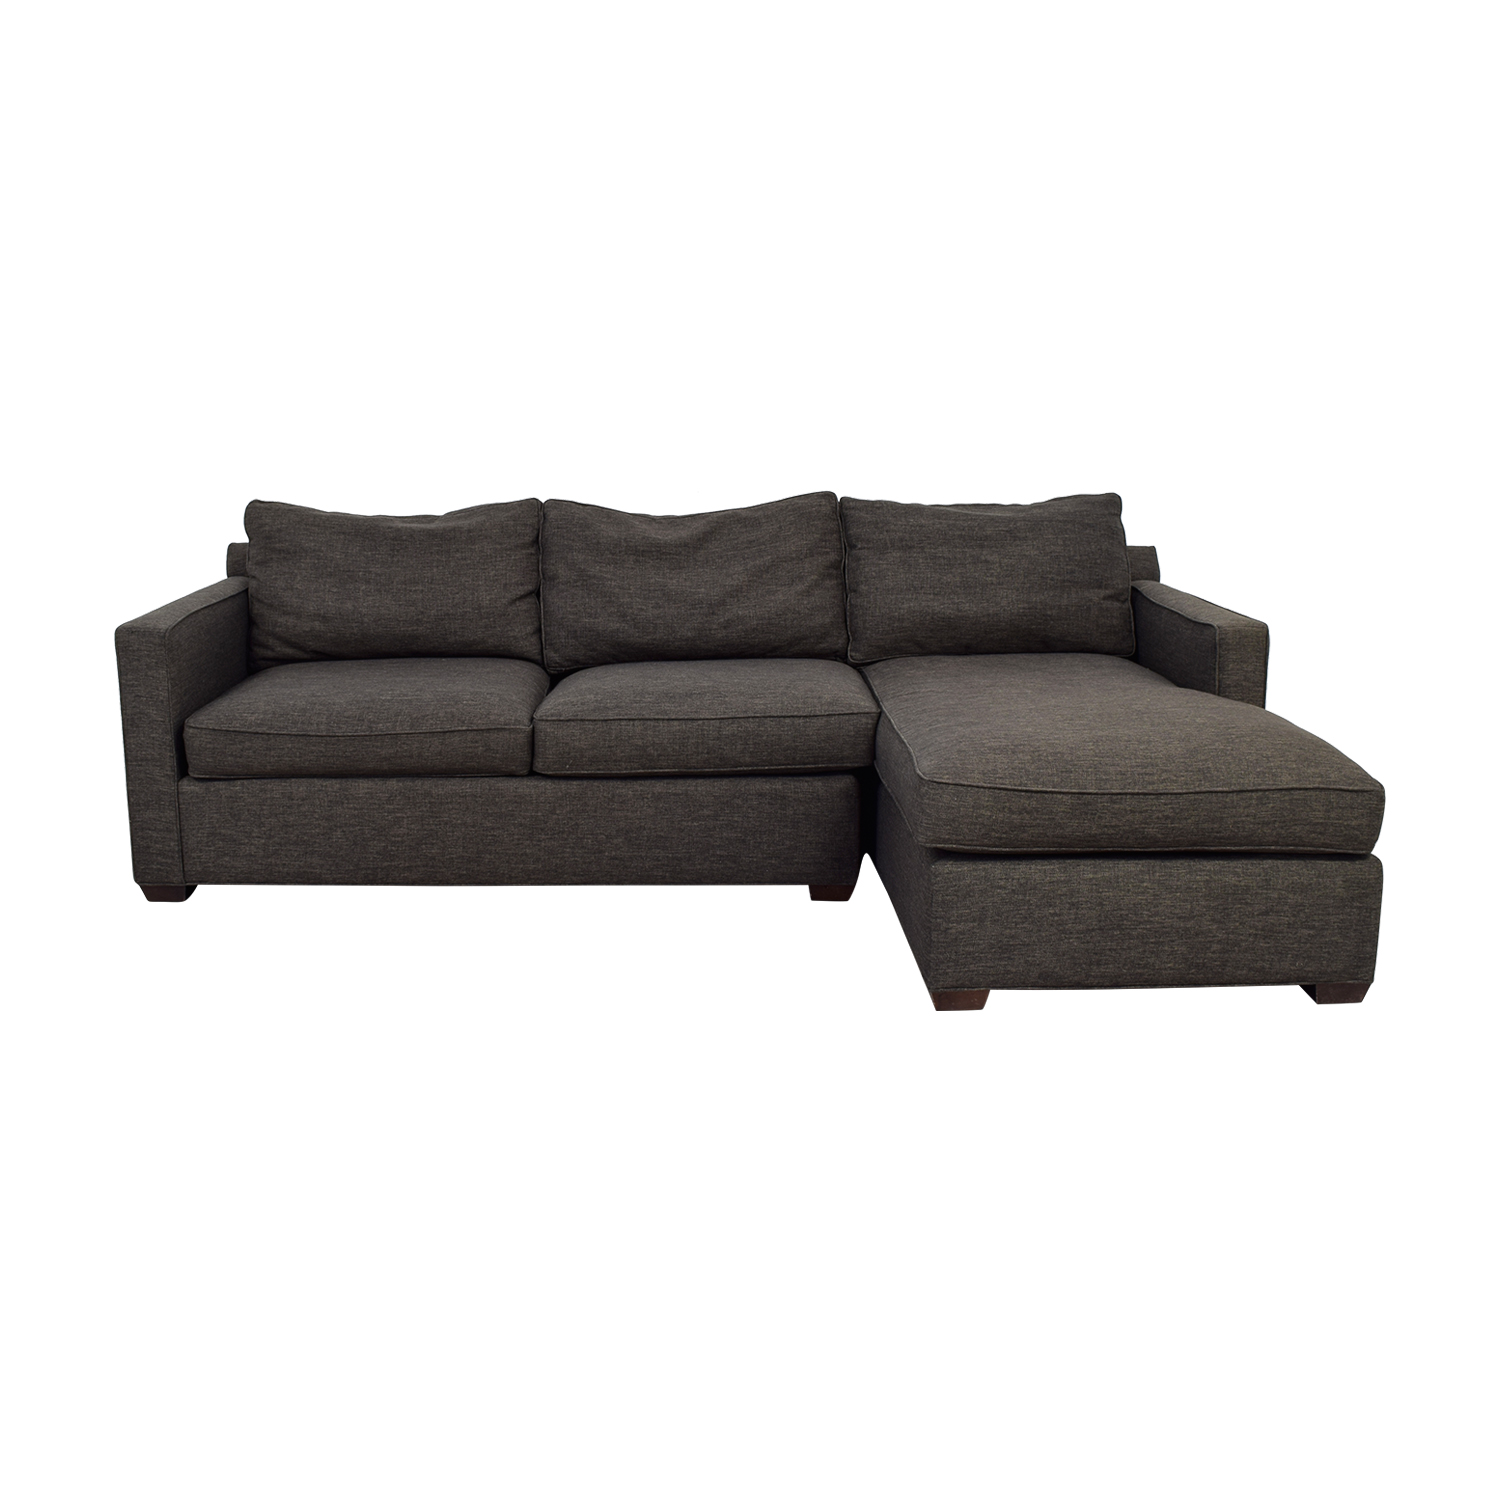 Crate & Barrel Crate & Barrel Davis Sectional on sale